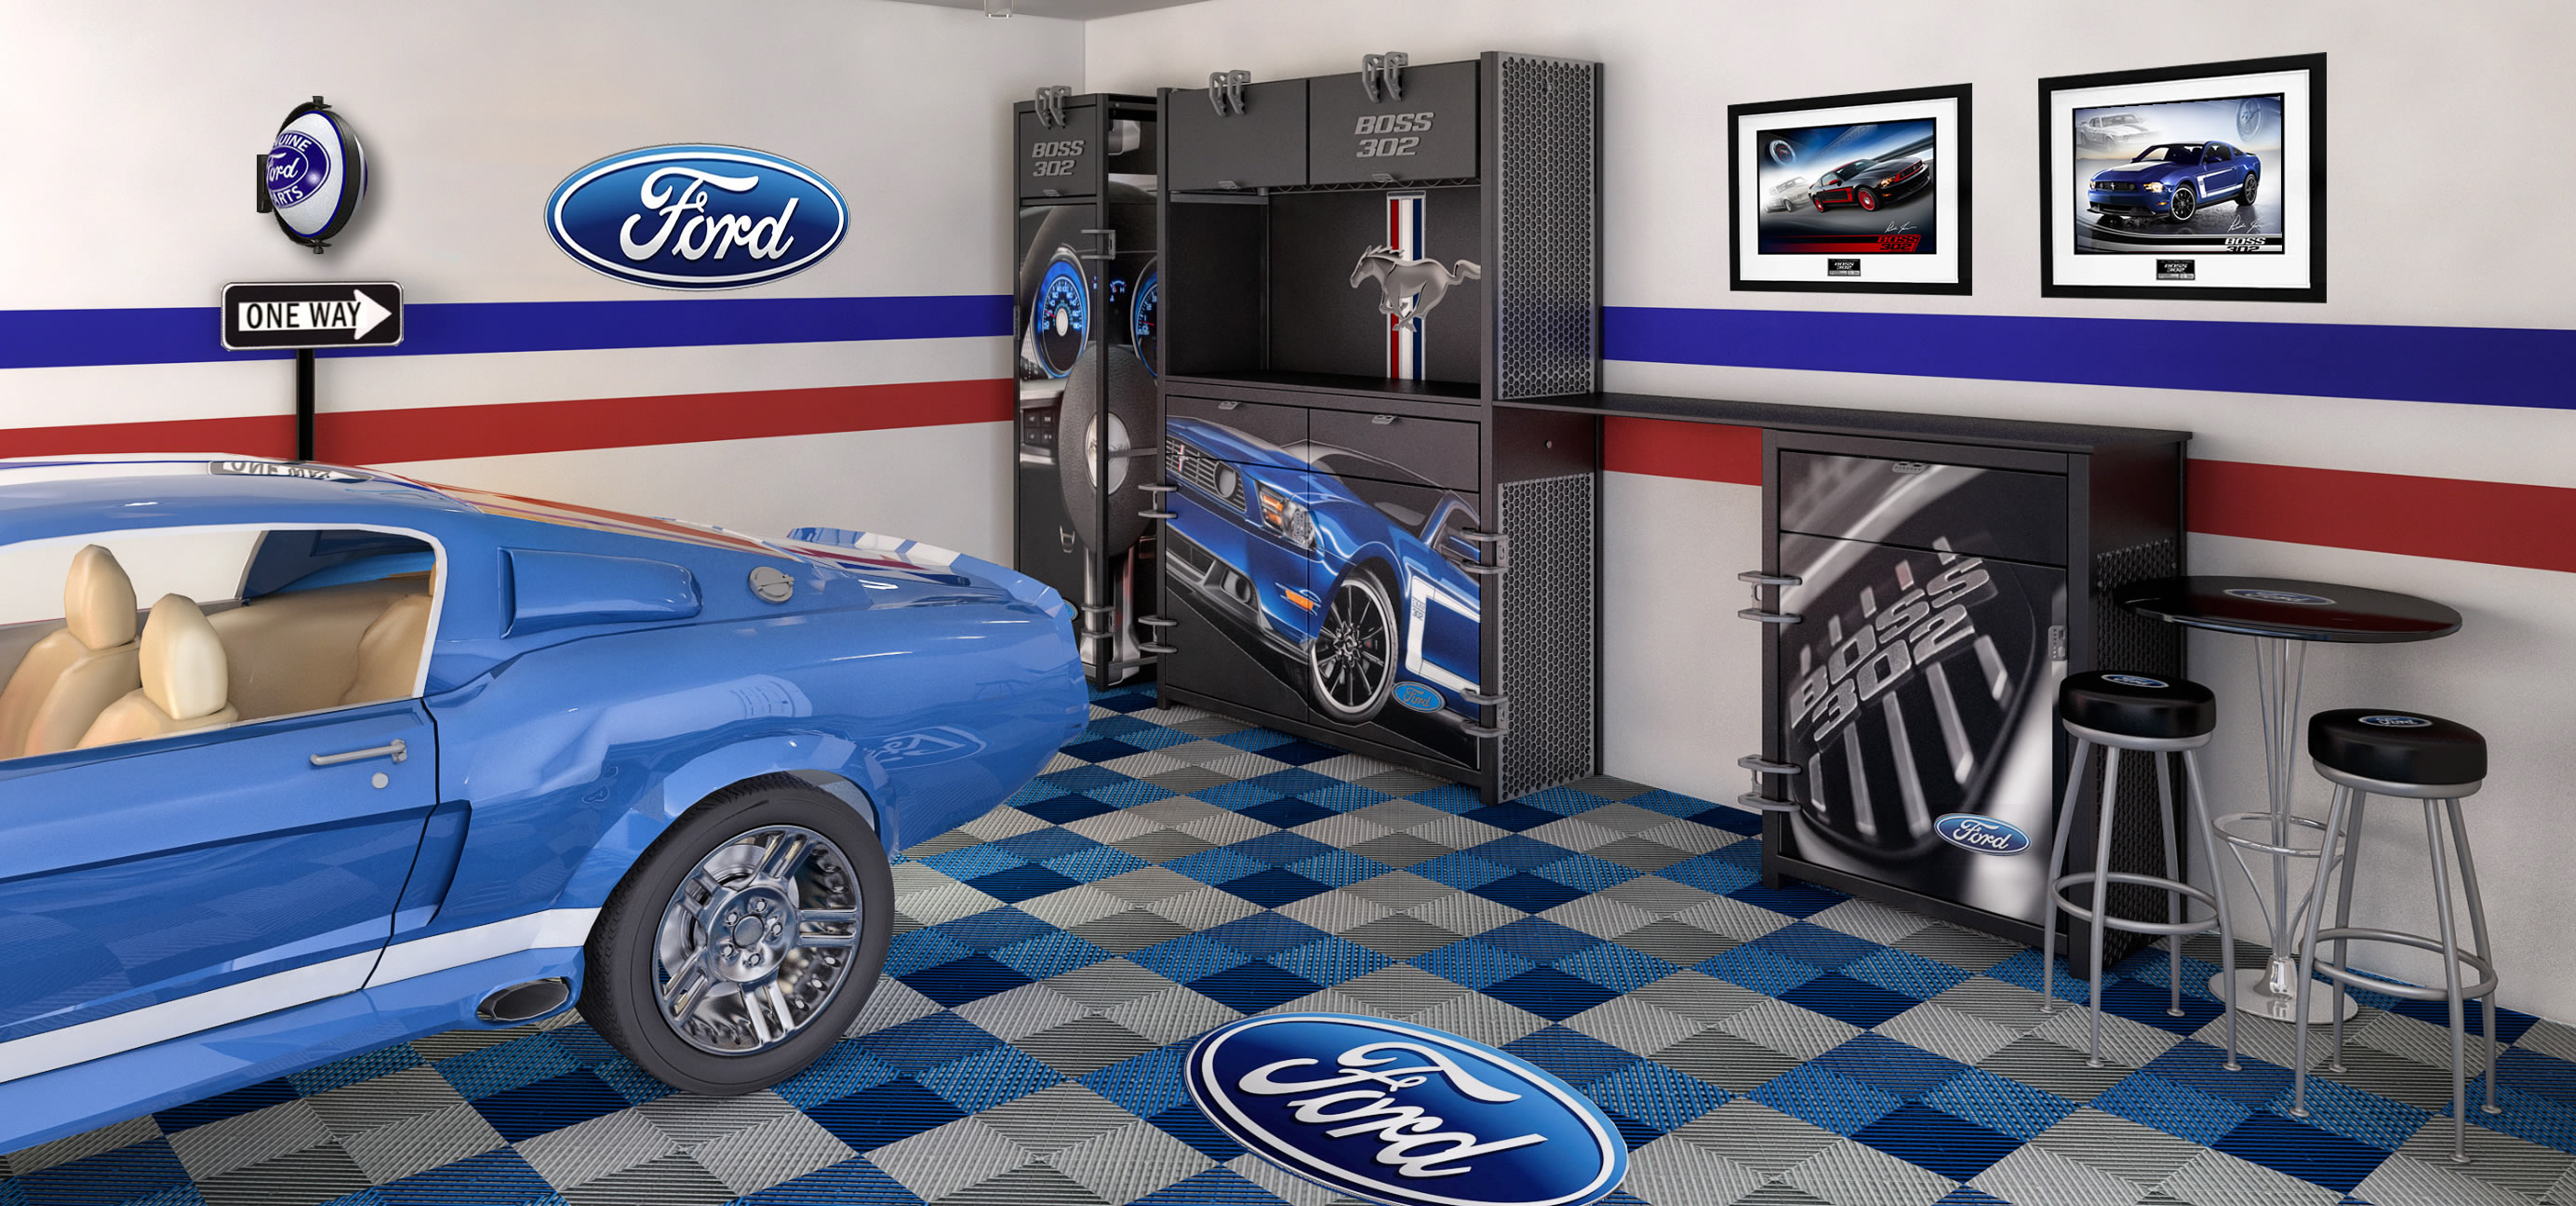 New Website Allows Ford Fans To Show The World Just How